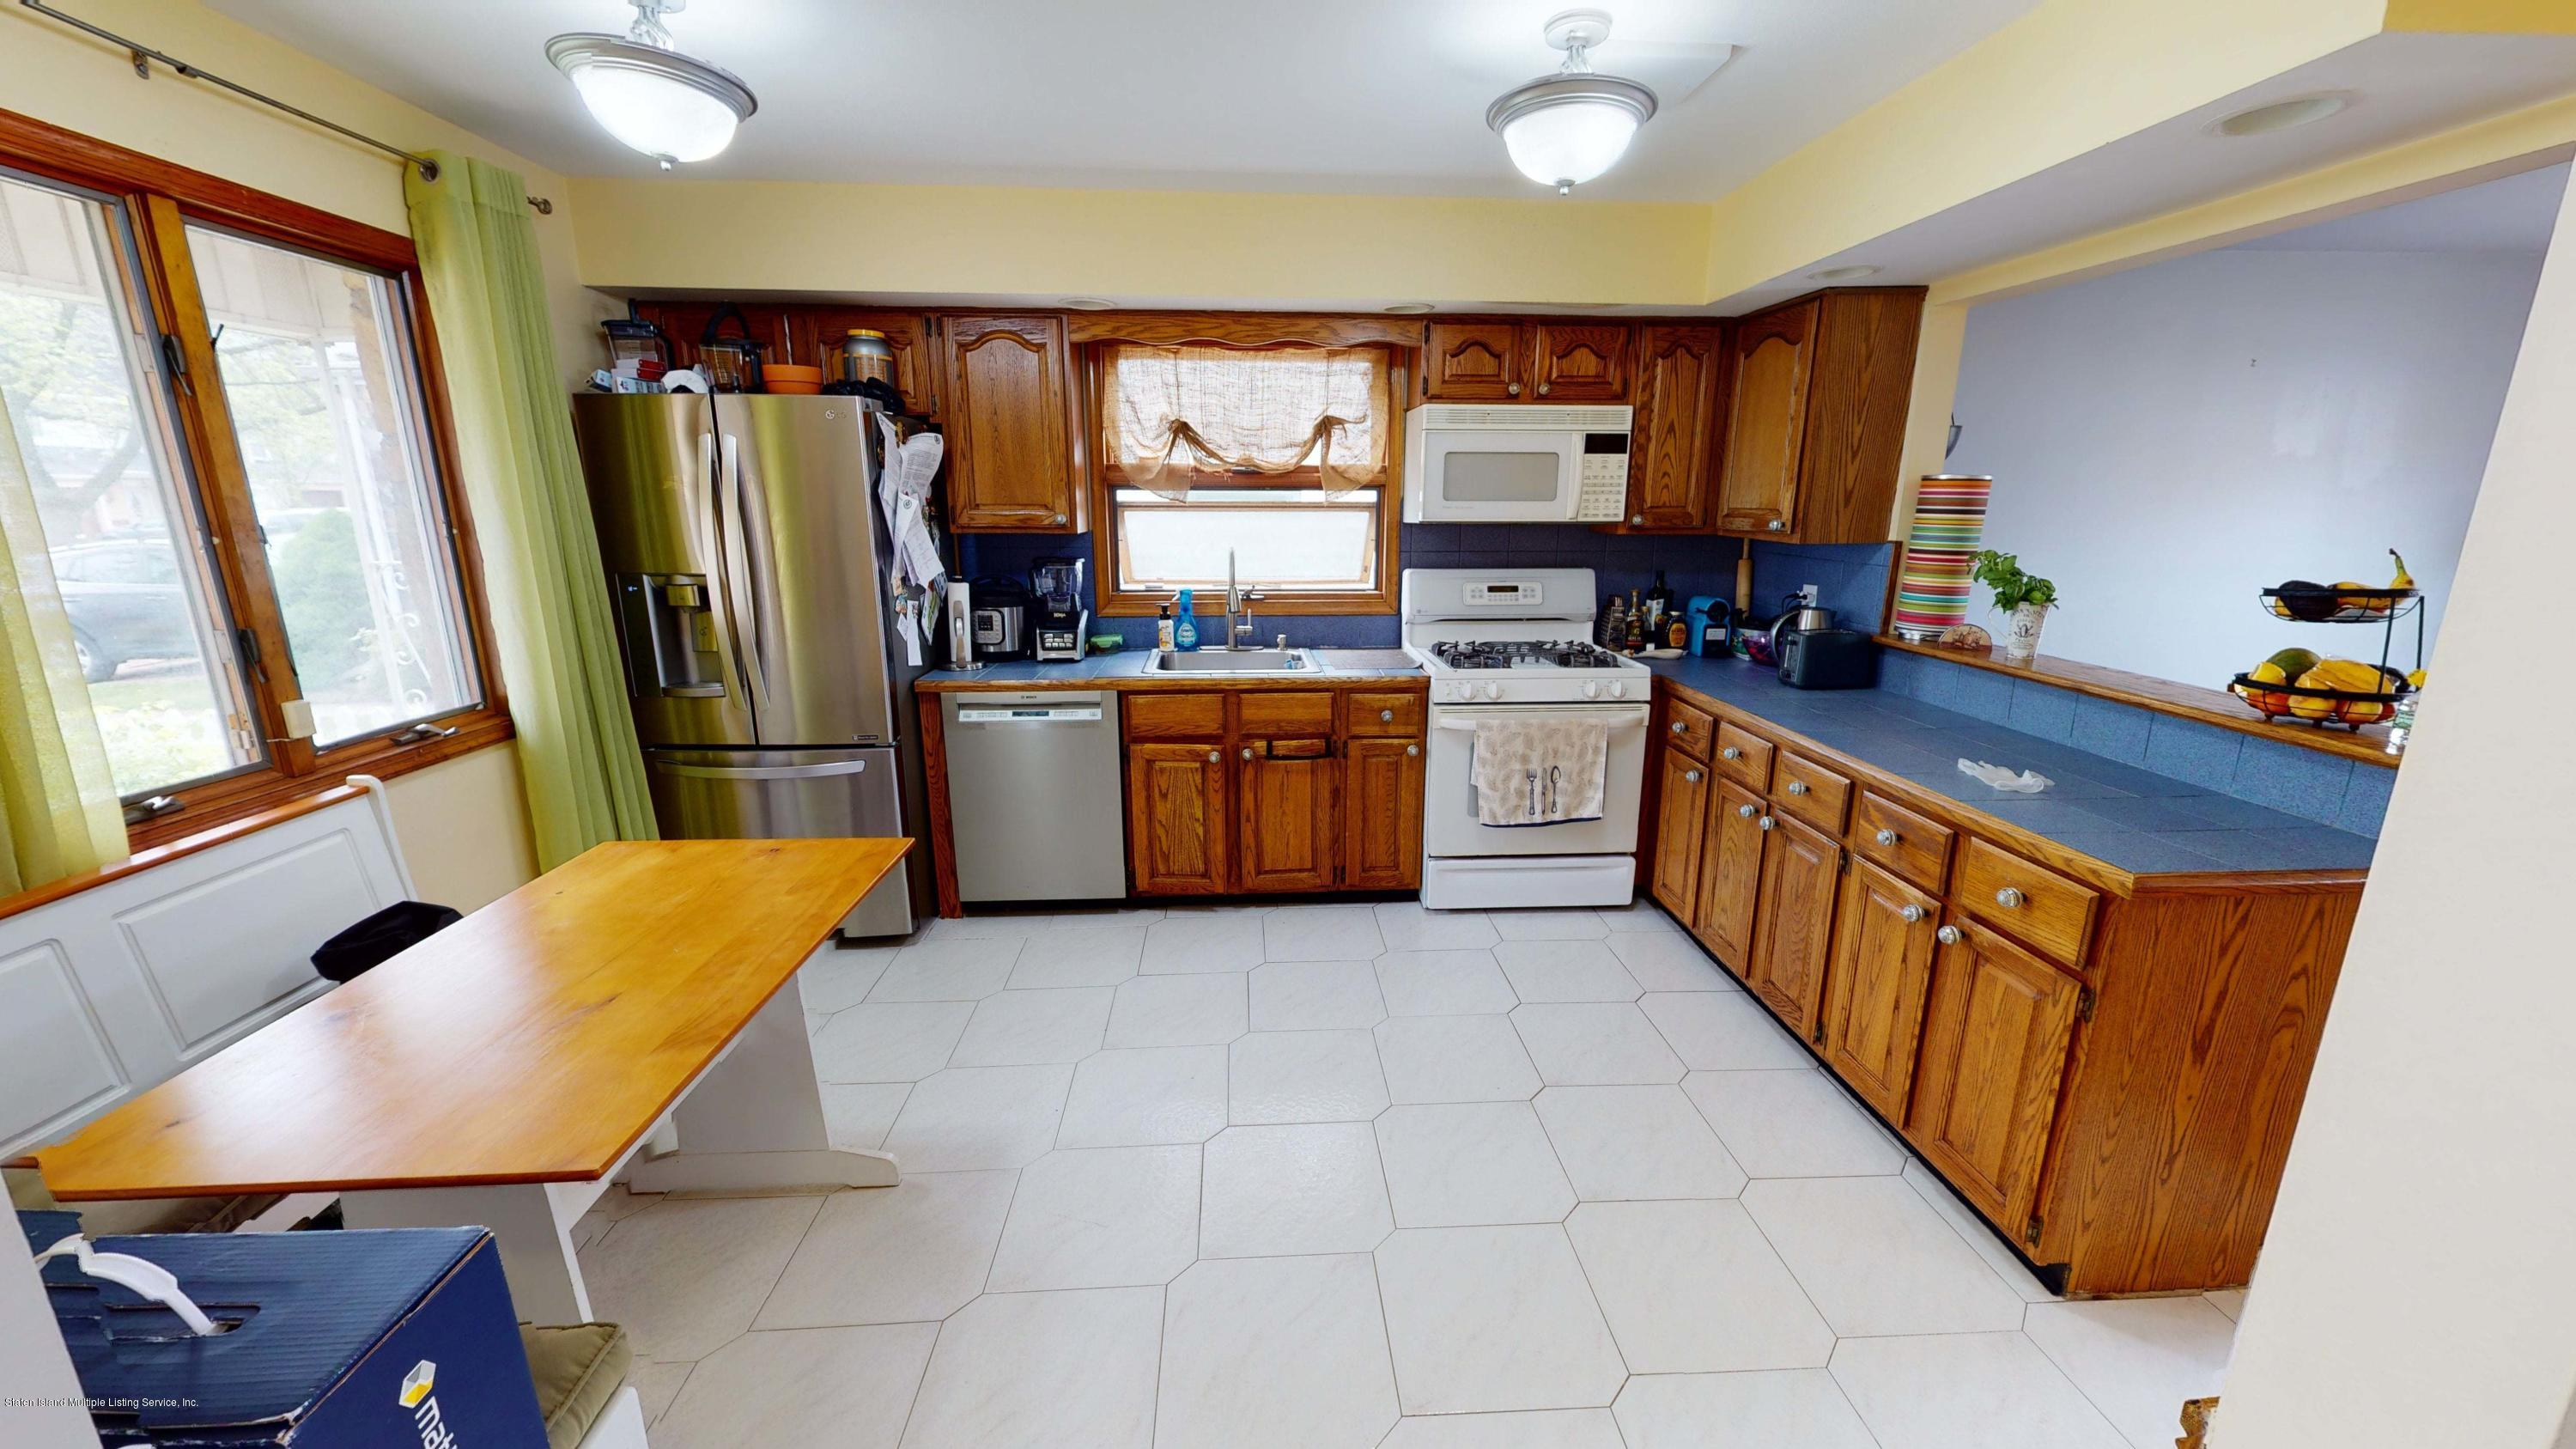 Single Family - Detached 129 Lucille Avenue  Staten Island, NY 10309, MLS-1135888-13